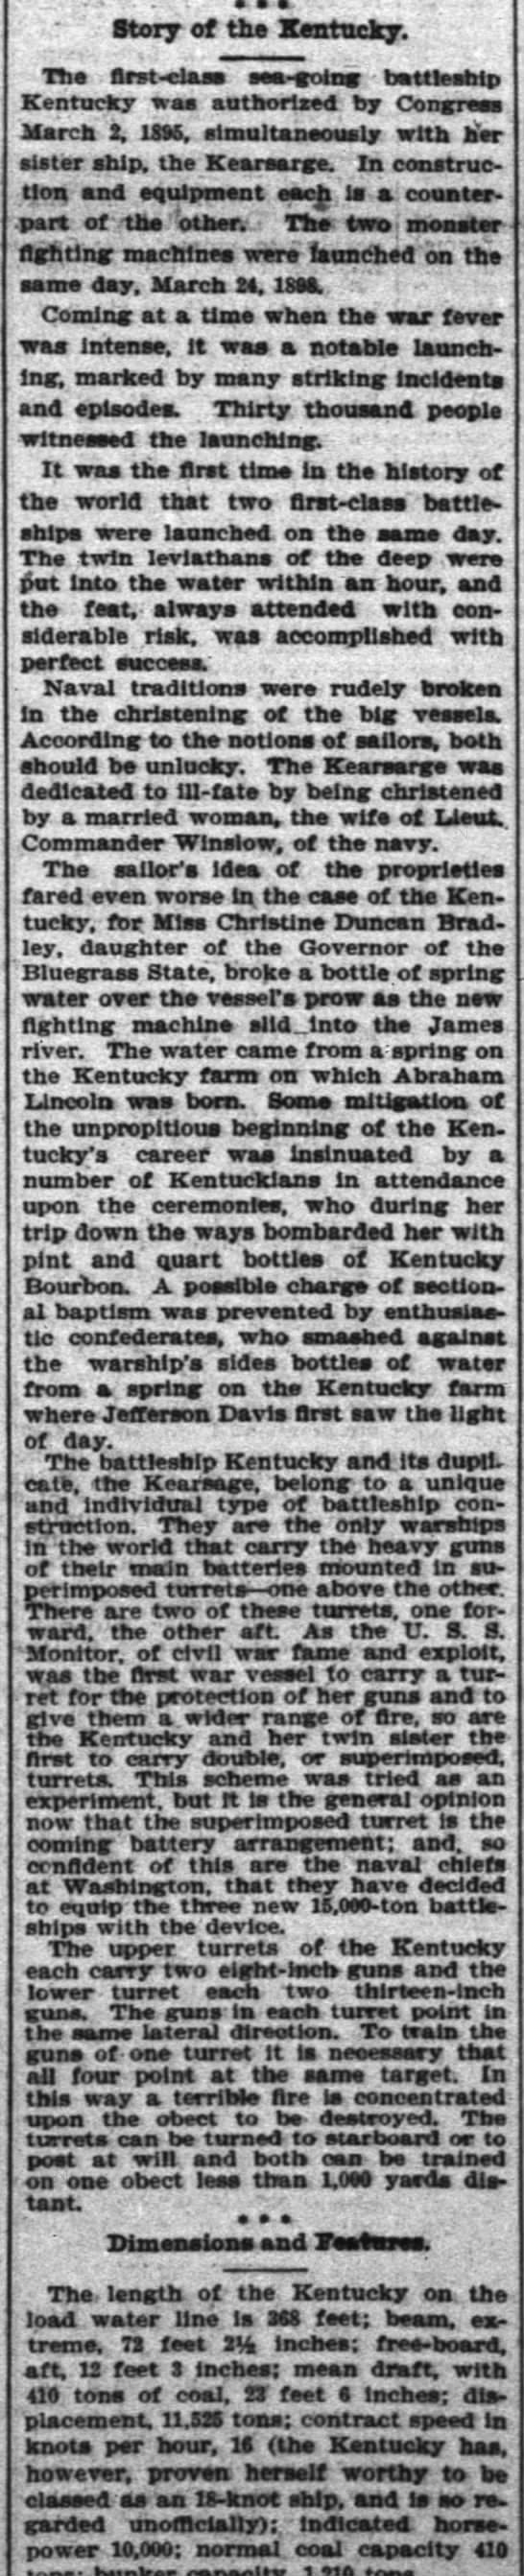 Launching the Kentucky and Kearsarge, reported on in Kentucky -